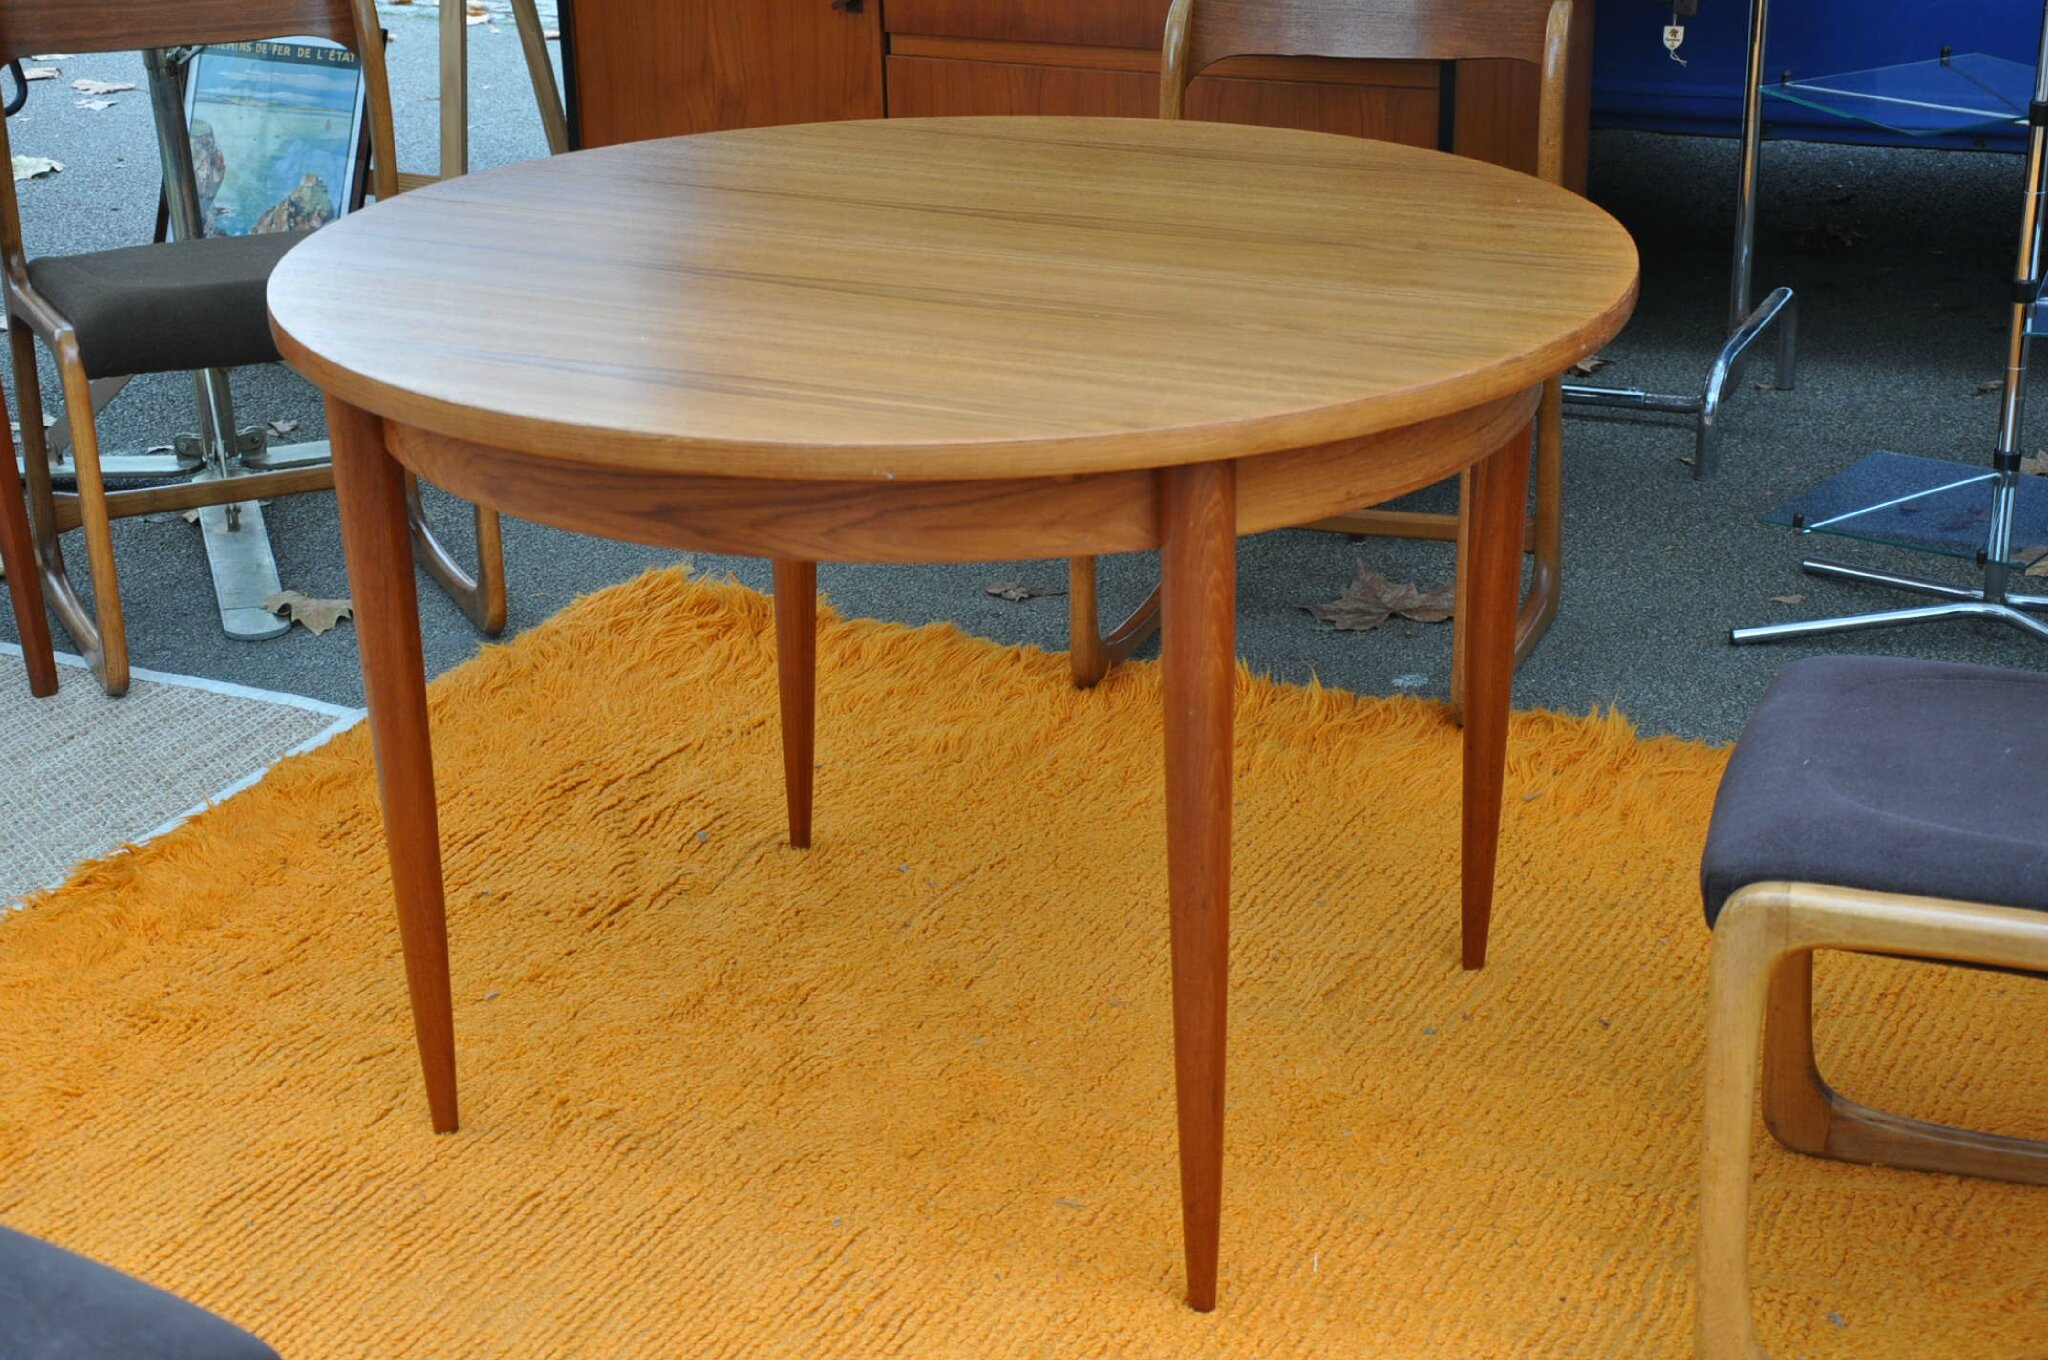 Table ronde teck de type scandinave article vendu for Table scandinave ronde rallonge